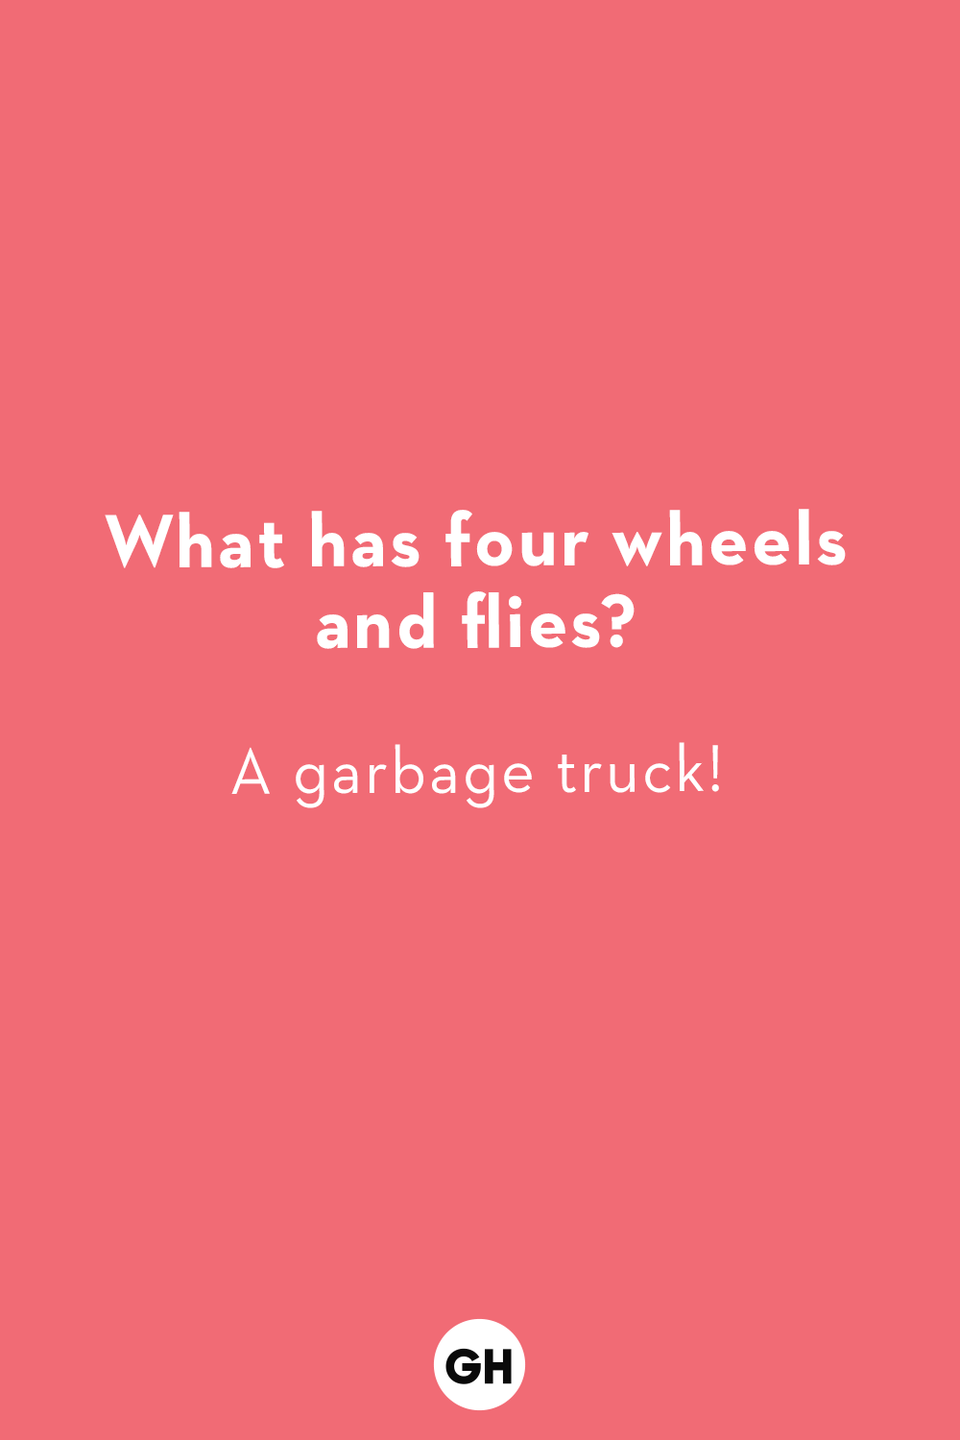 <p>A garbage truck!</p>